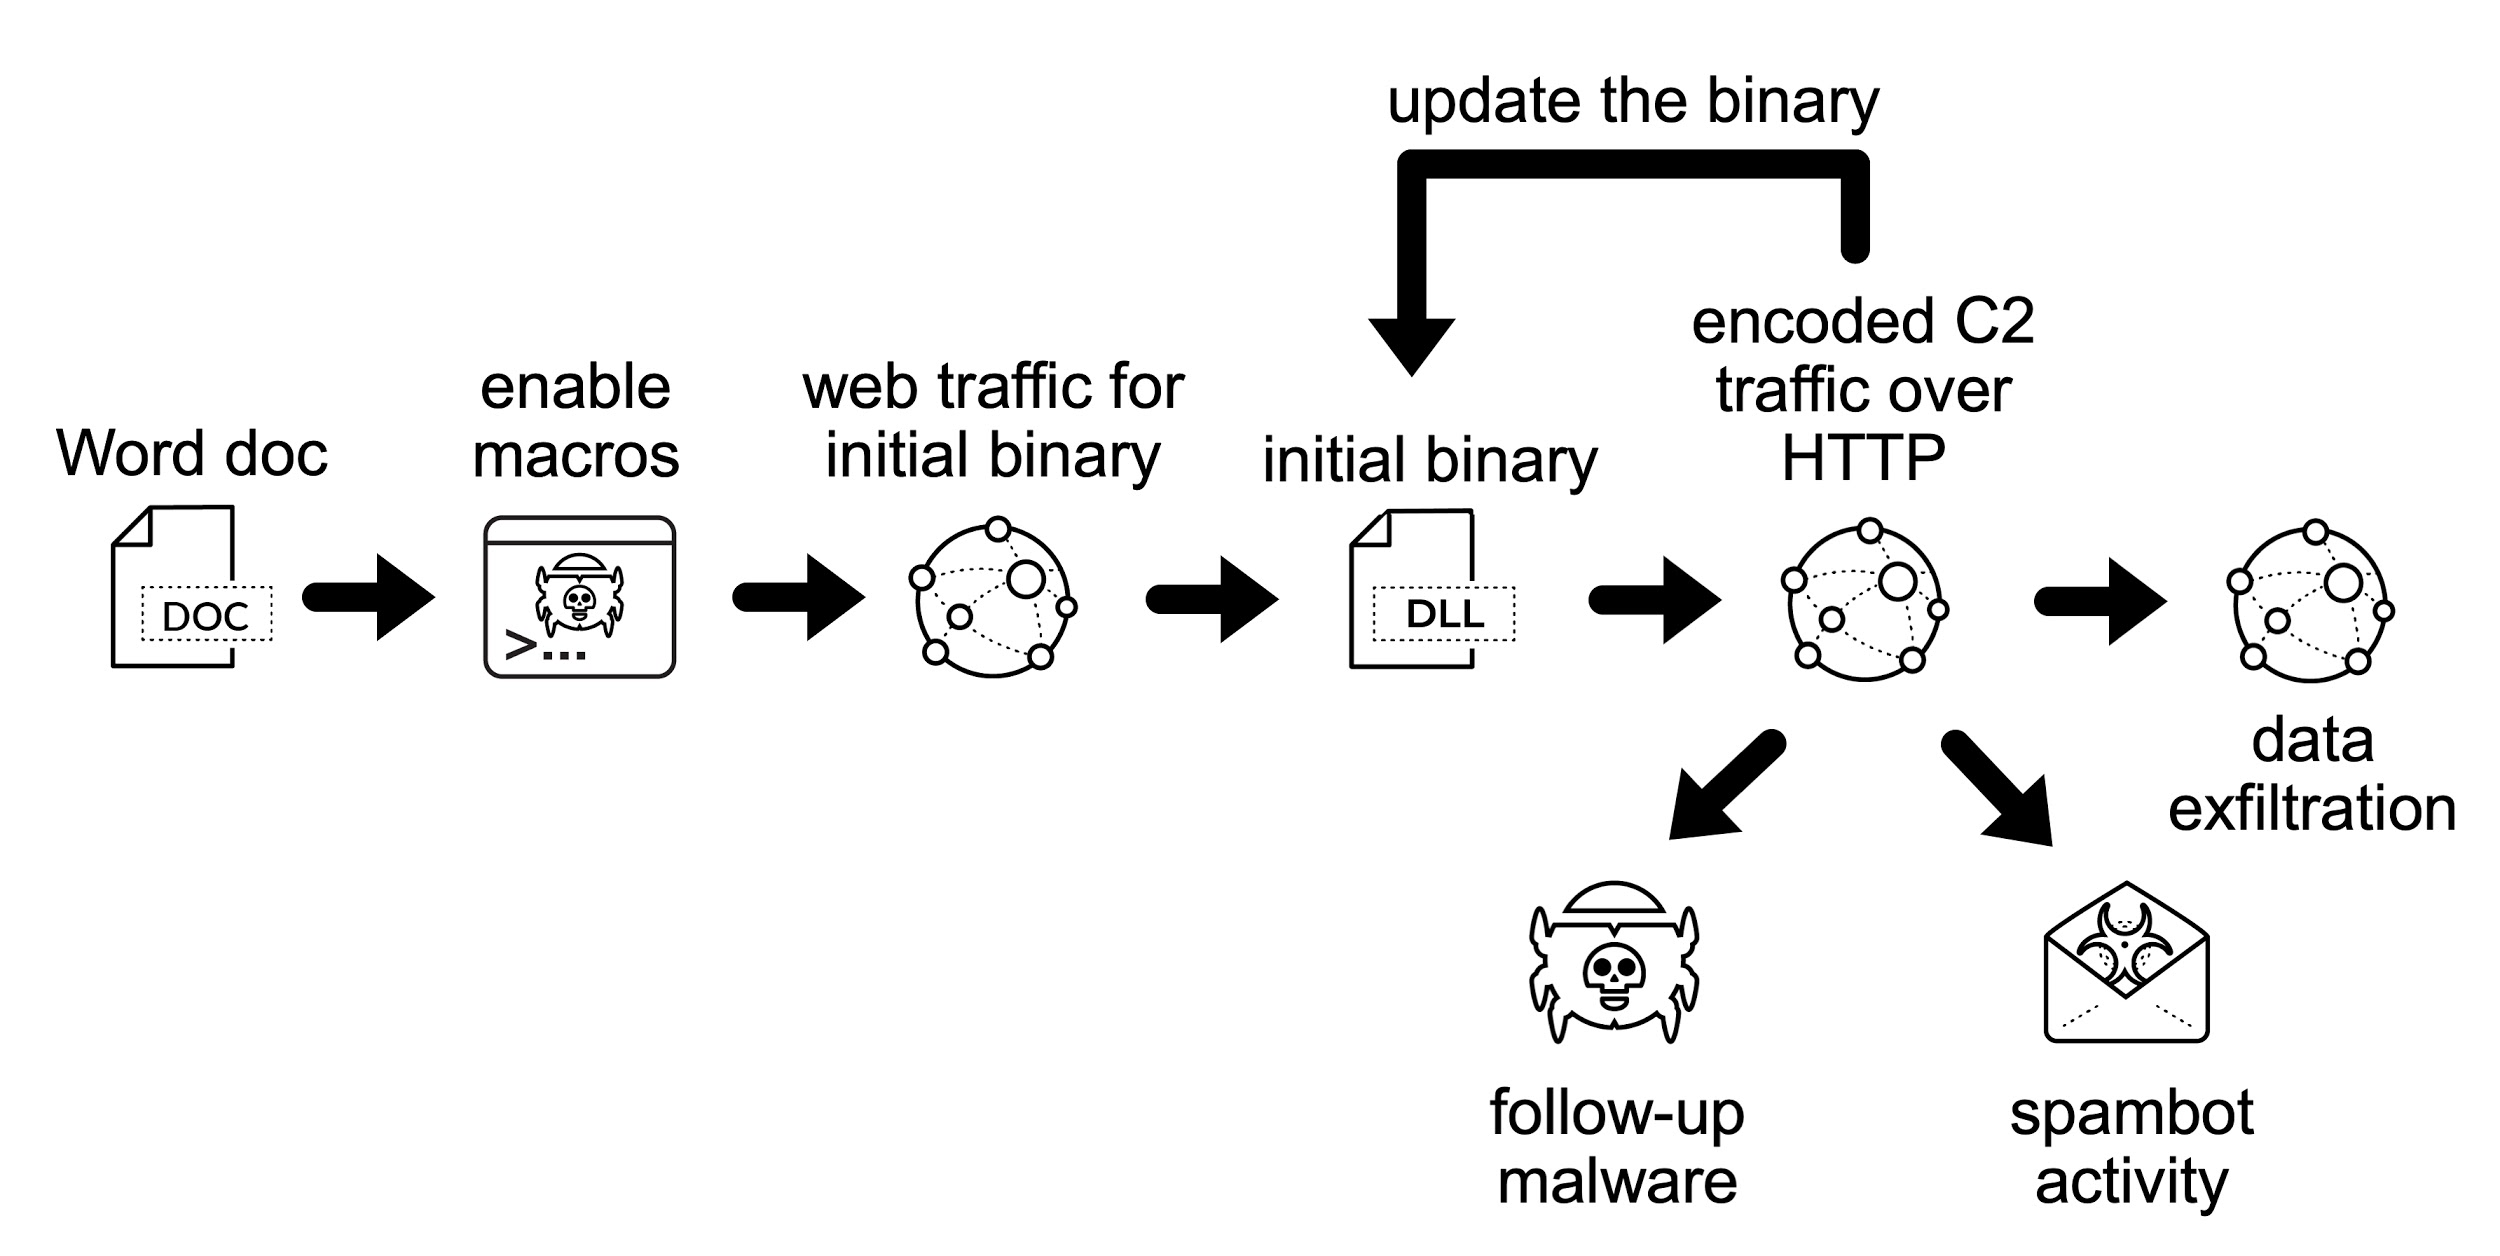 Flowchart for an Emotet infection: Word doc to enable macros to web traffic for initial binary to initial binary. From there, encoded C2 traffic over HTTP, which is a hub in the flowchart that can lead to follow-up malware, spambot activity, data exfiltration and updating the binary.